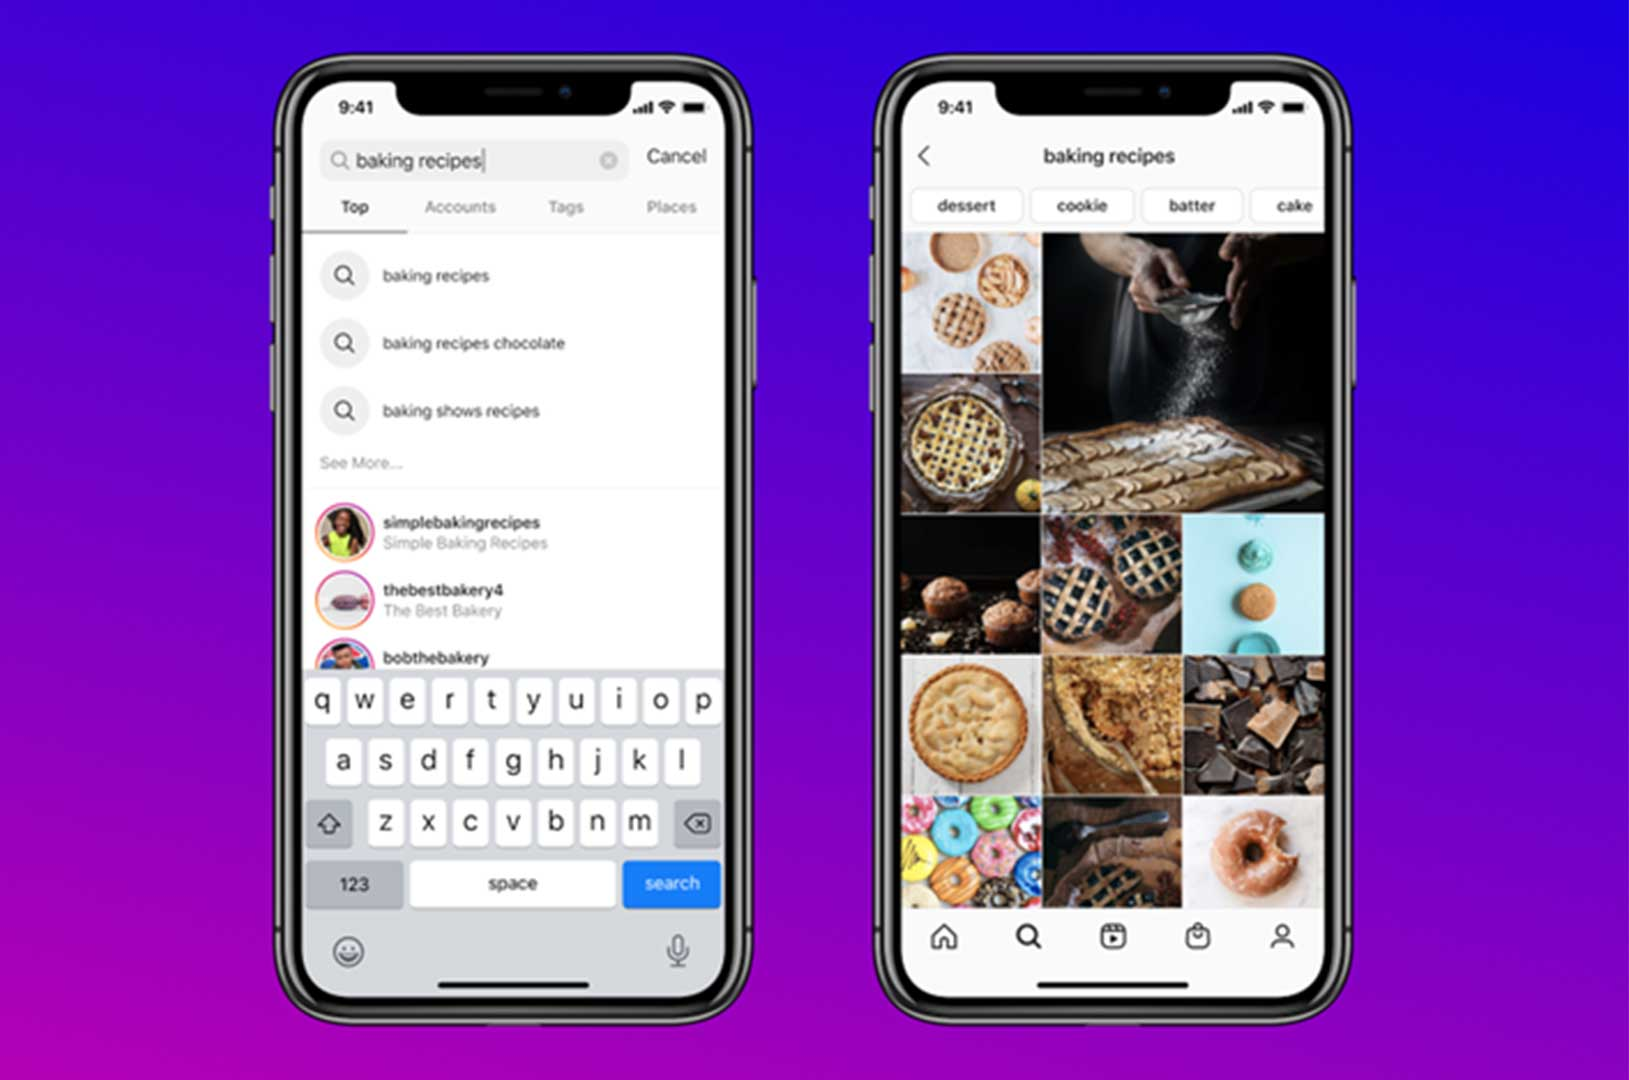 Instagram Keyword Search Function Preview